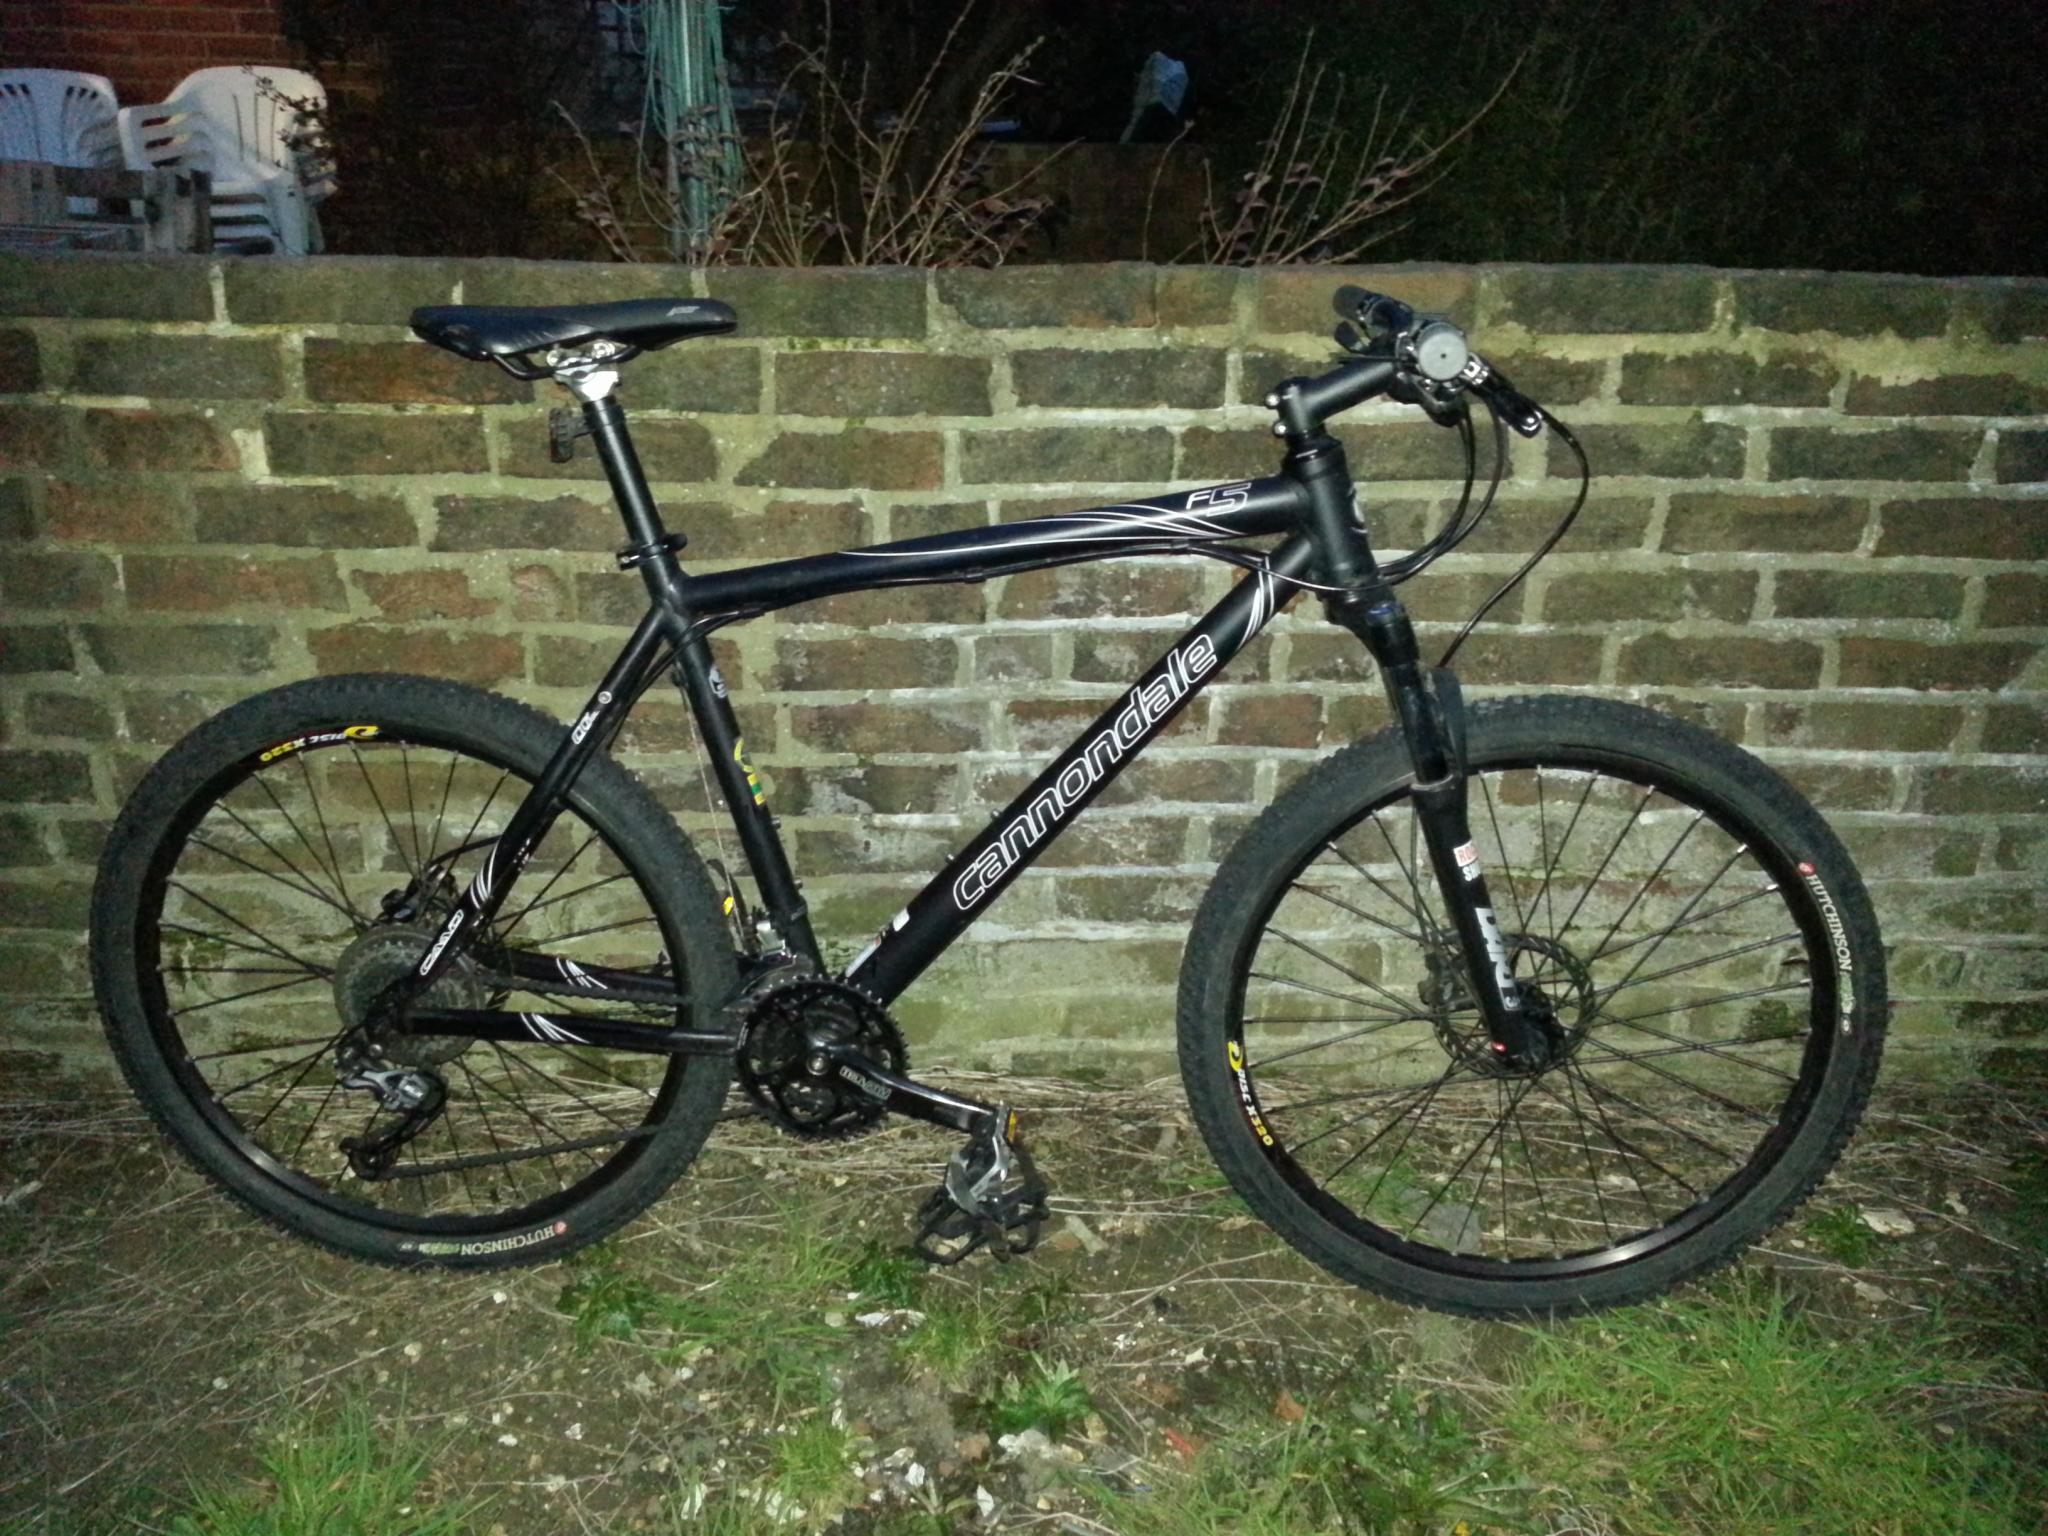 40a1826ae6f For Sale: Cannondale F5 2009 XL | LFGSS